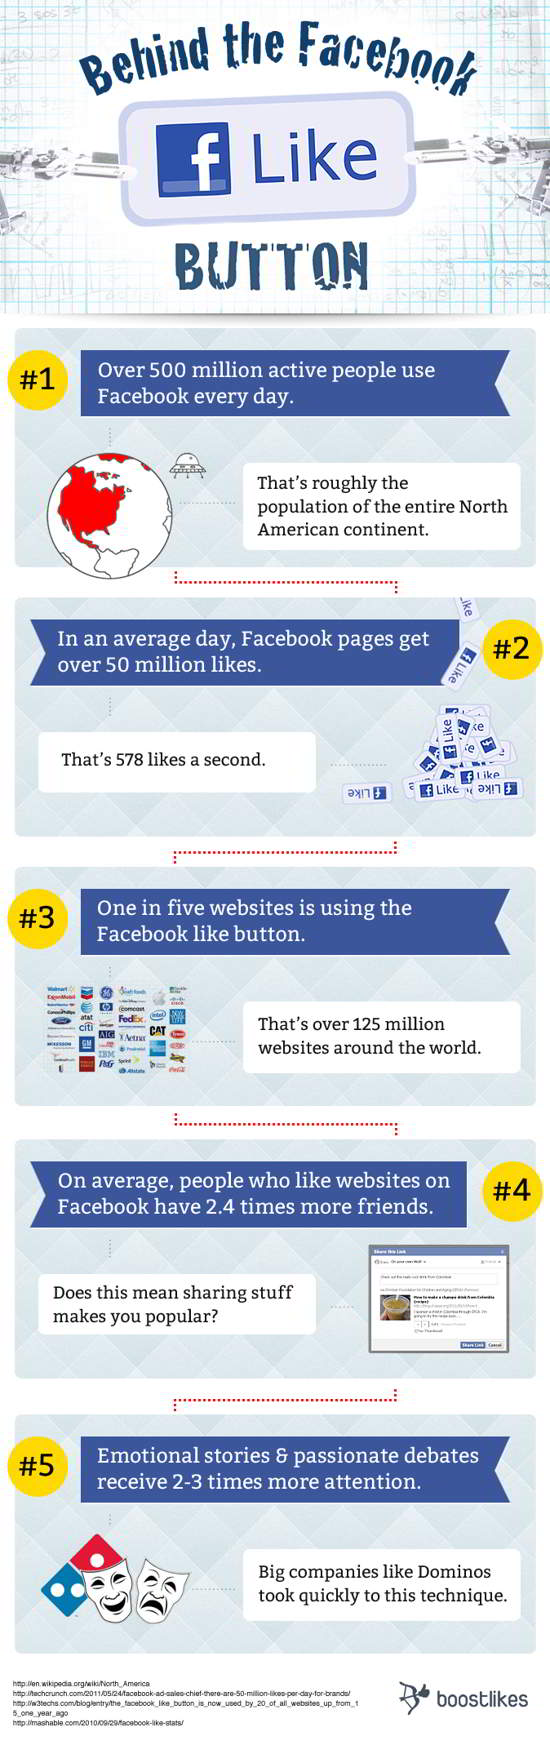 Behind the Facebook Like Button